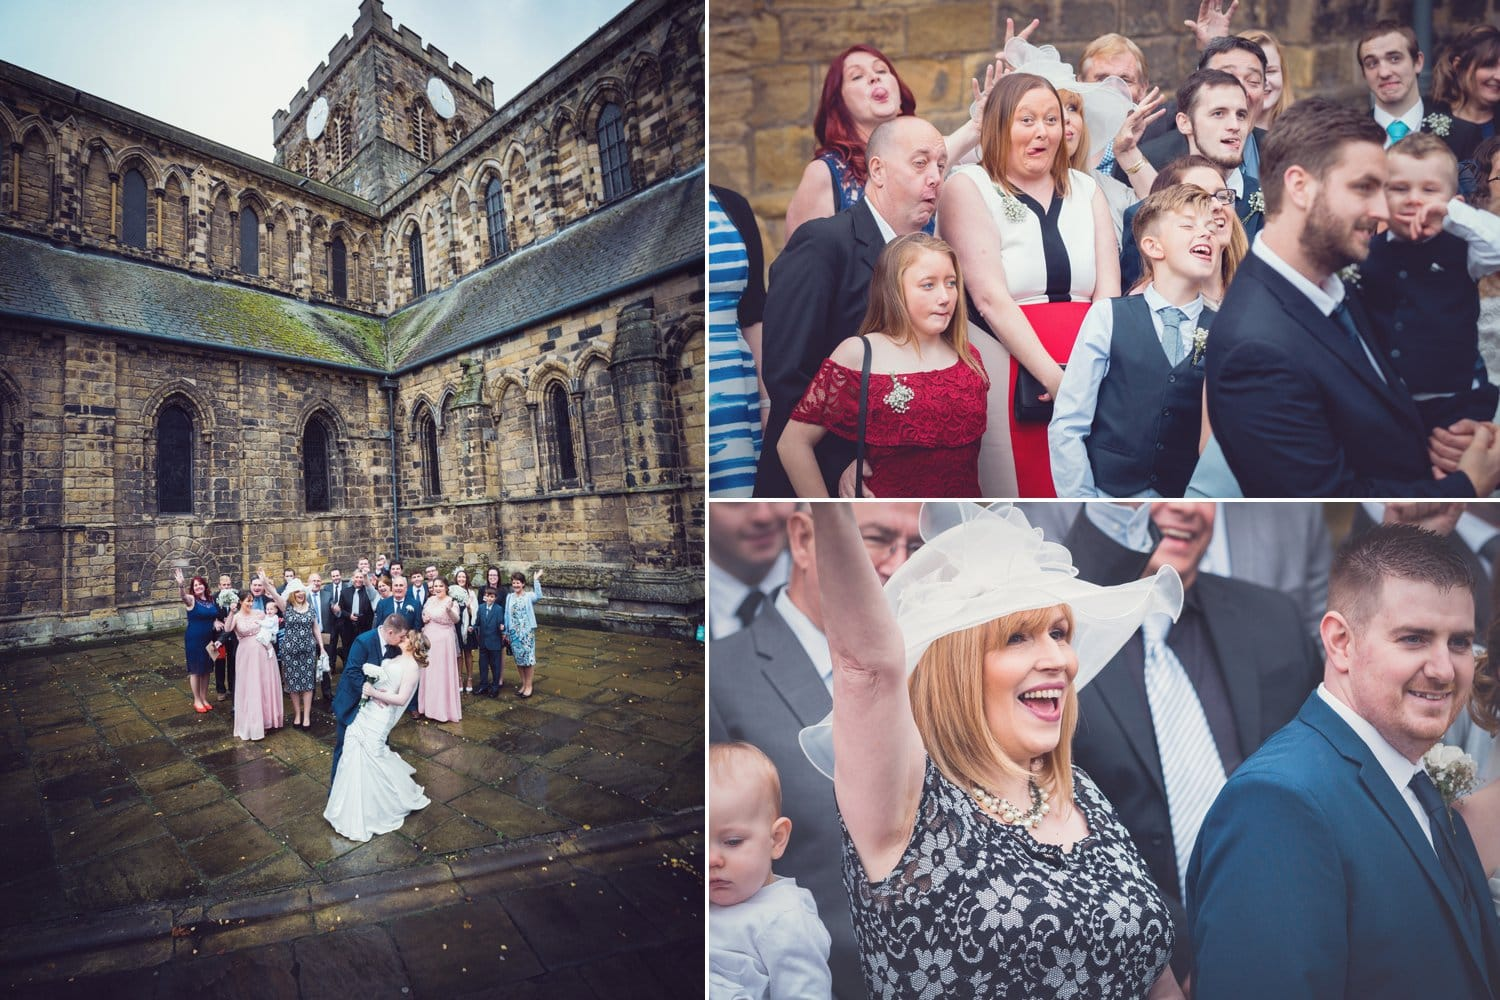 Hexham Abbey Wedding, group photo